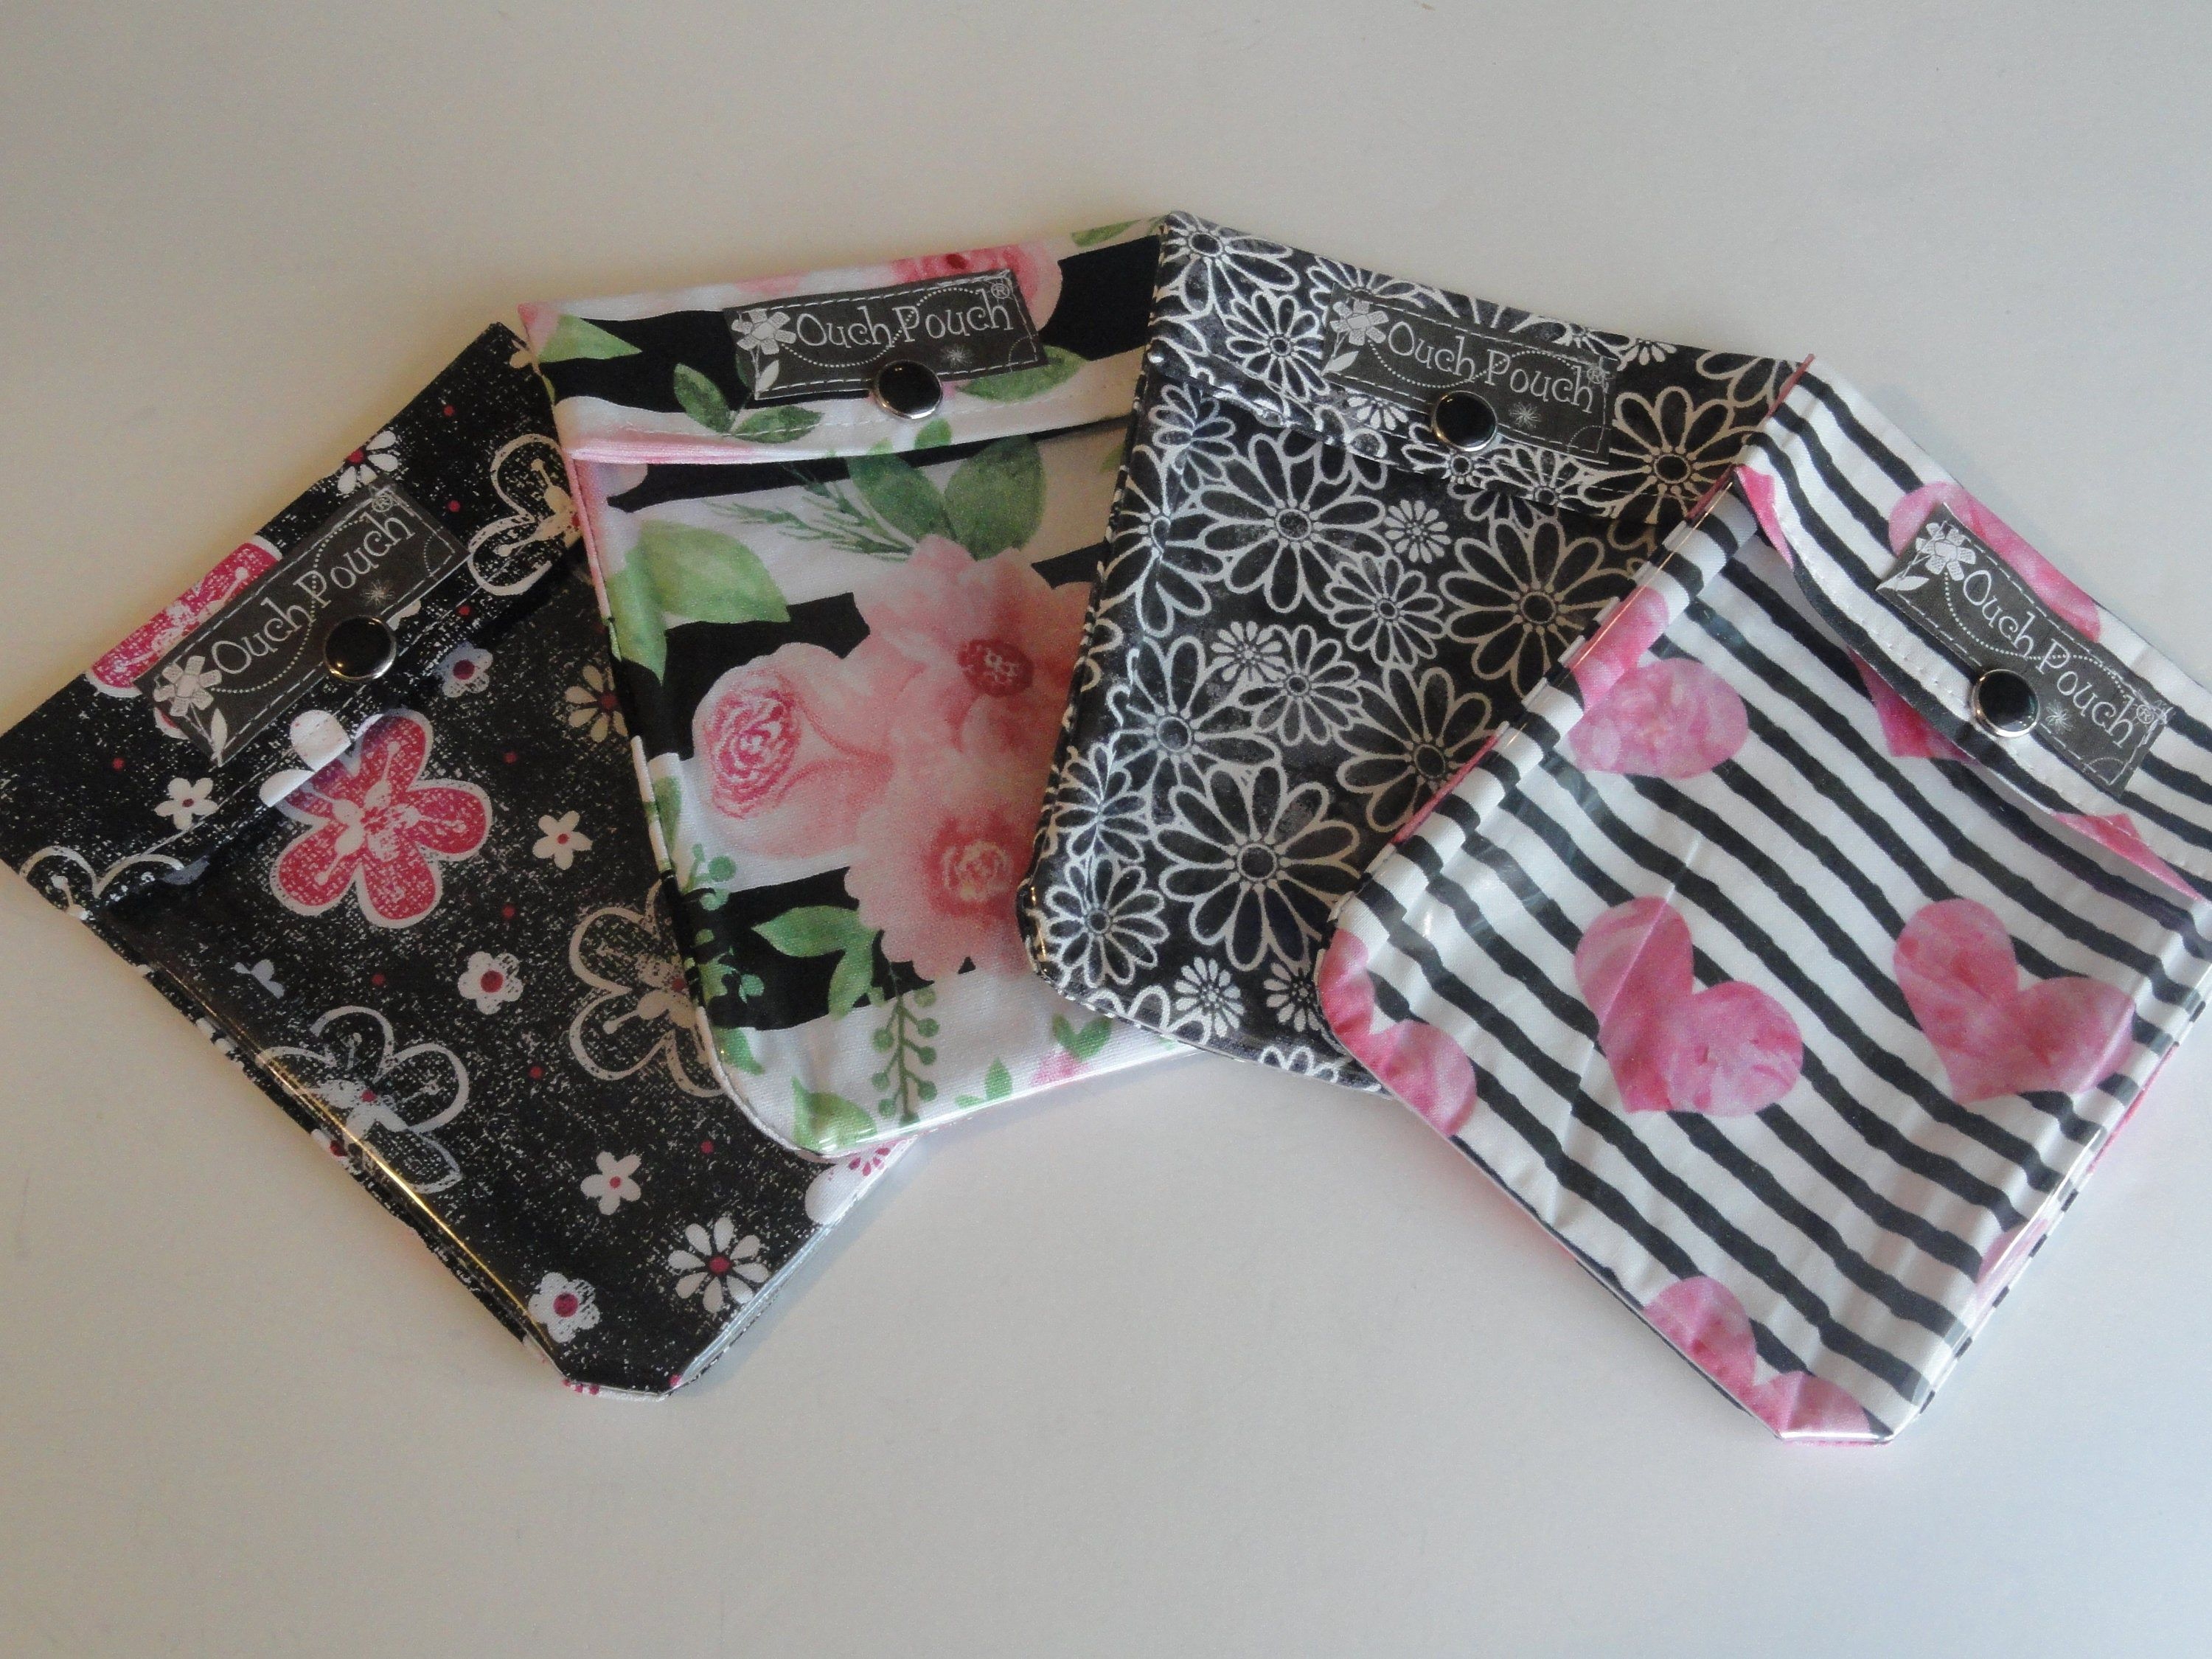 Black Floral Clear Front Bags Ouch Pouch 4 Pack Purse Inserts